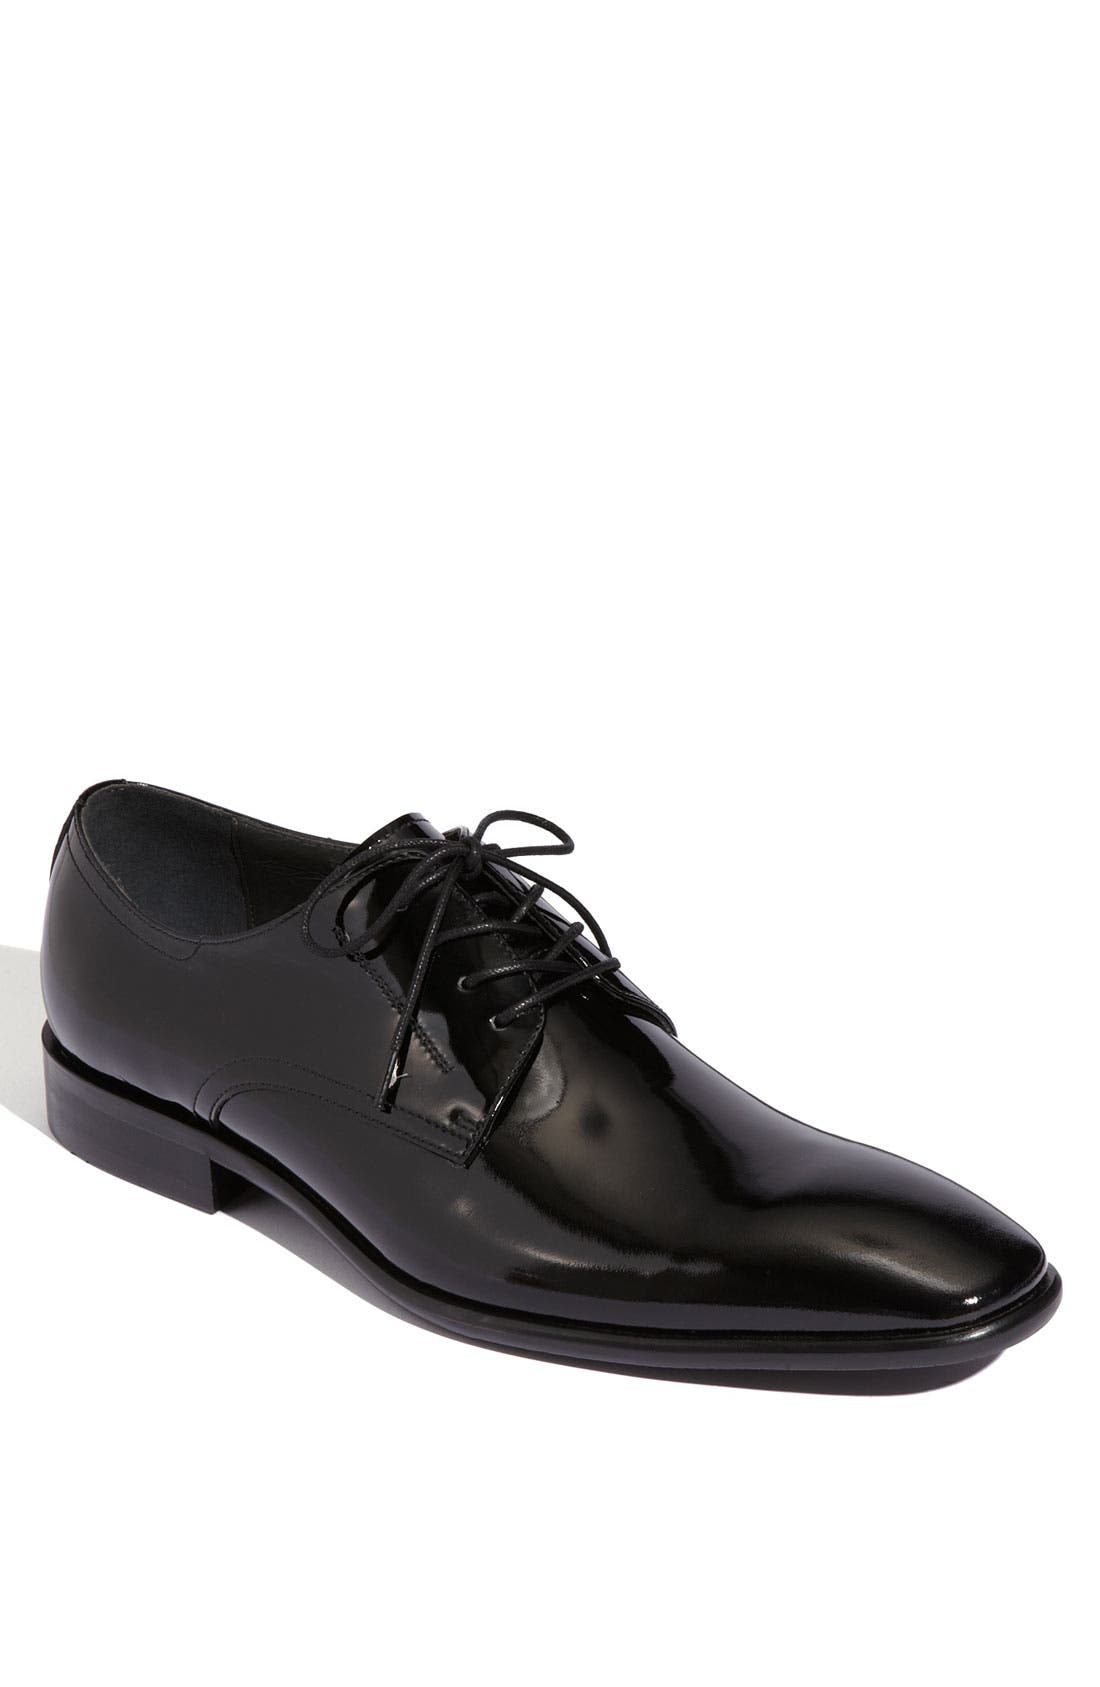 Alternate Image 1 Selected - Calibrate 'Oscar' Patent Leather Dress Shoe (Men)